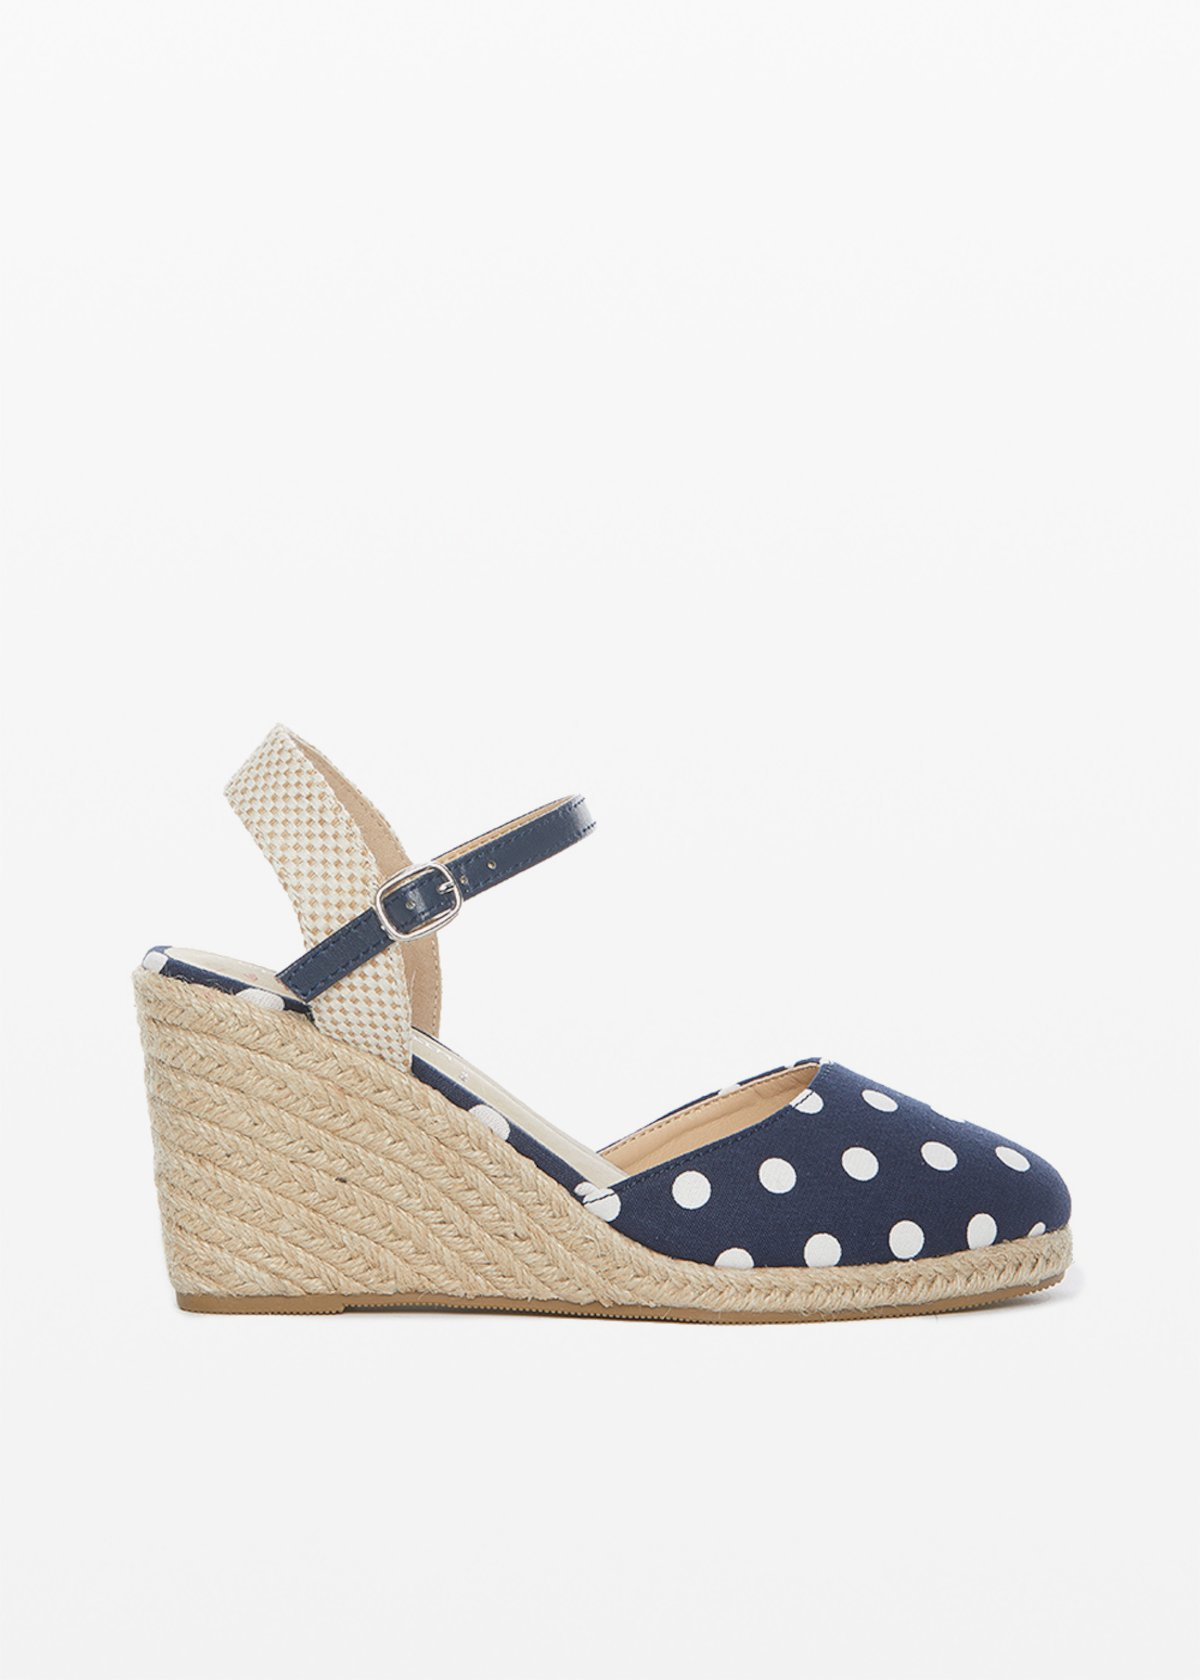 Sirya sandals Polka dot pattern and wedge - Dark Blue Pois - Woman